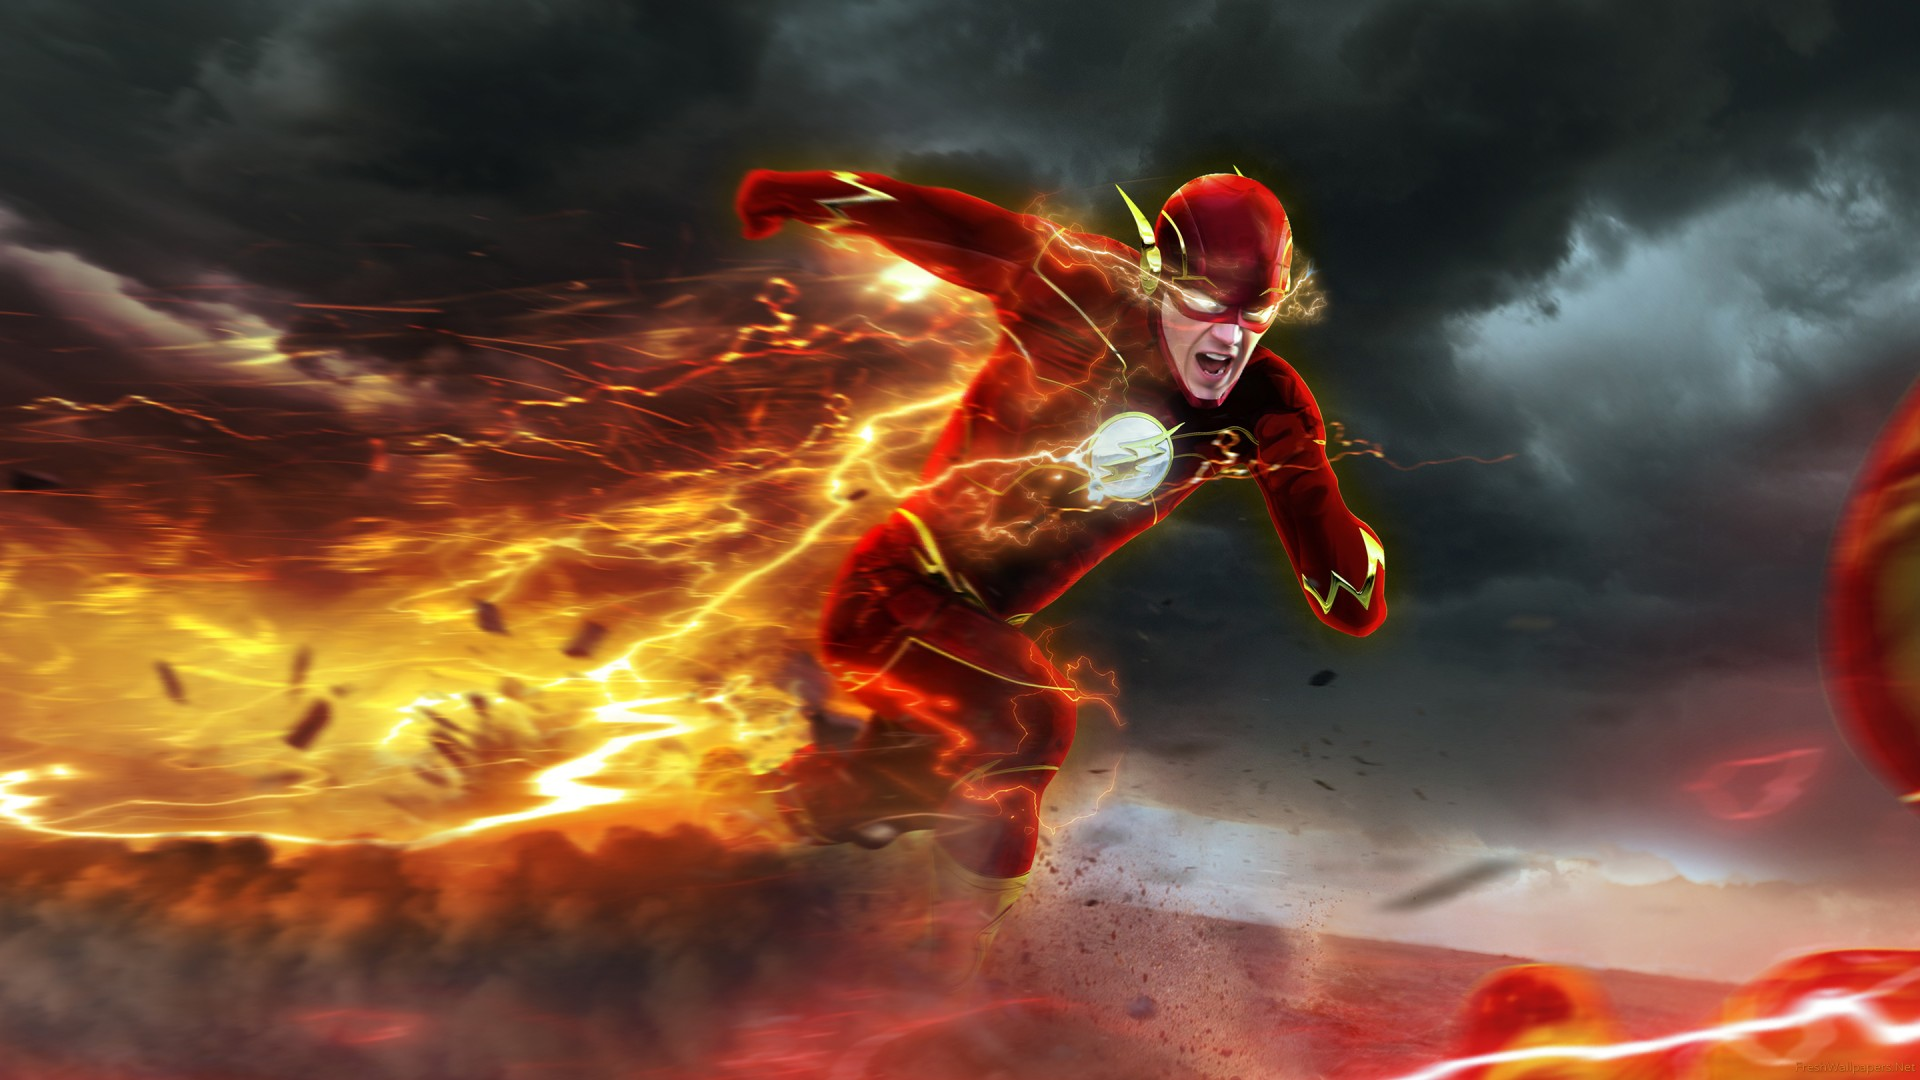 Mira los nuevos trailers de la cuarta temporada de Arrow y la segunda de The Flash 1